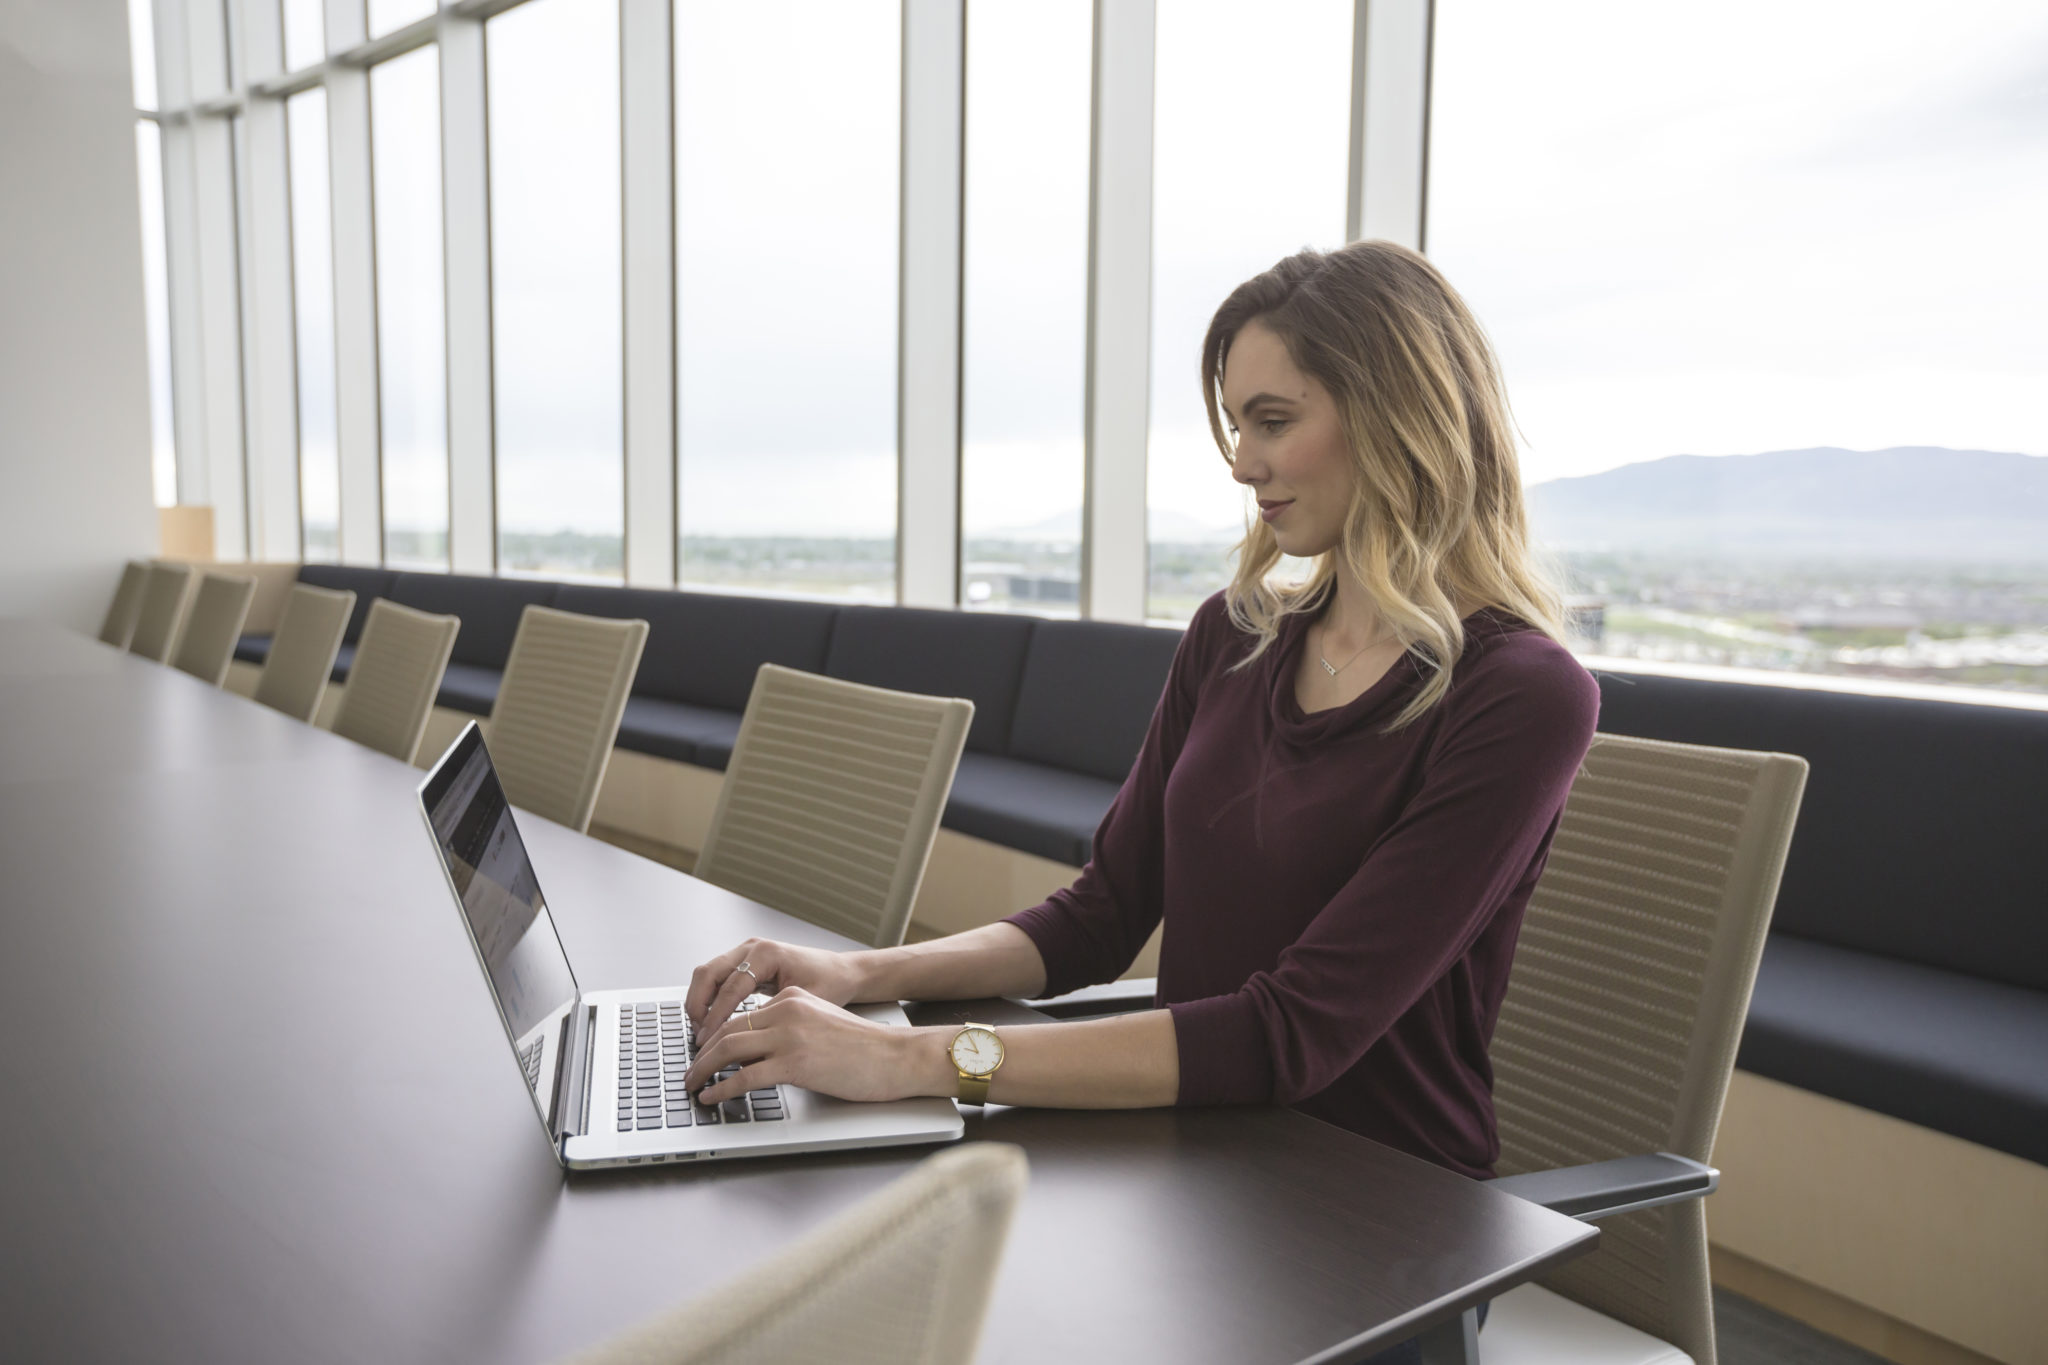 Lady in office typing on laptop